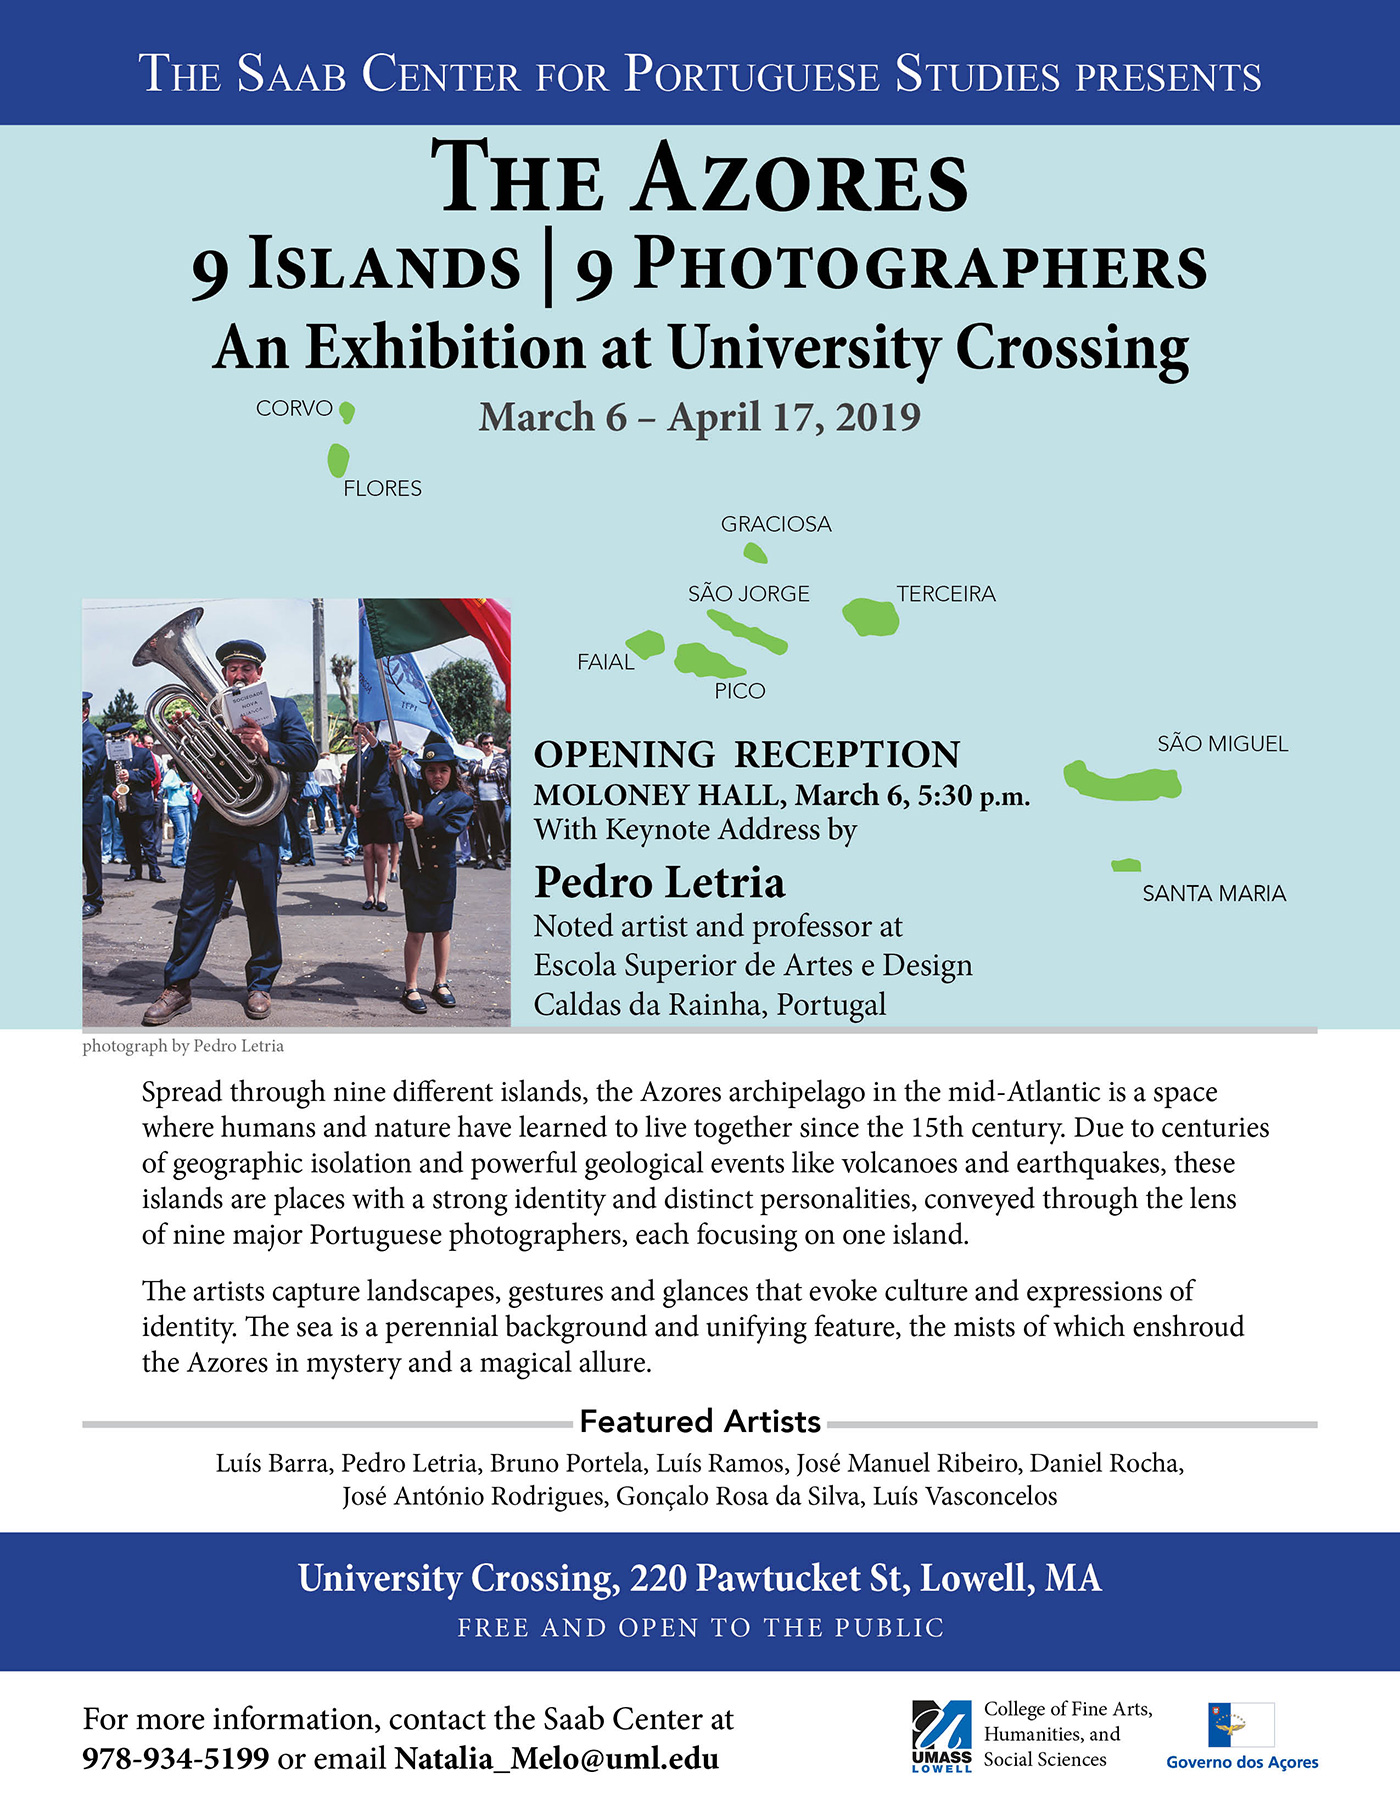 Poster for The Azores: 9 Islands | 9 Photographers An Exhibition at University Crossing at UMass Lowell March 6 - April 17, 2019. Opening Reception on Wednesday, March 6, 2019 at 5:30 p.m. at UMass Lowell's Moloney Hall at University Crossing.